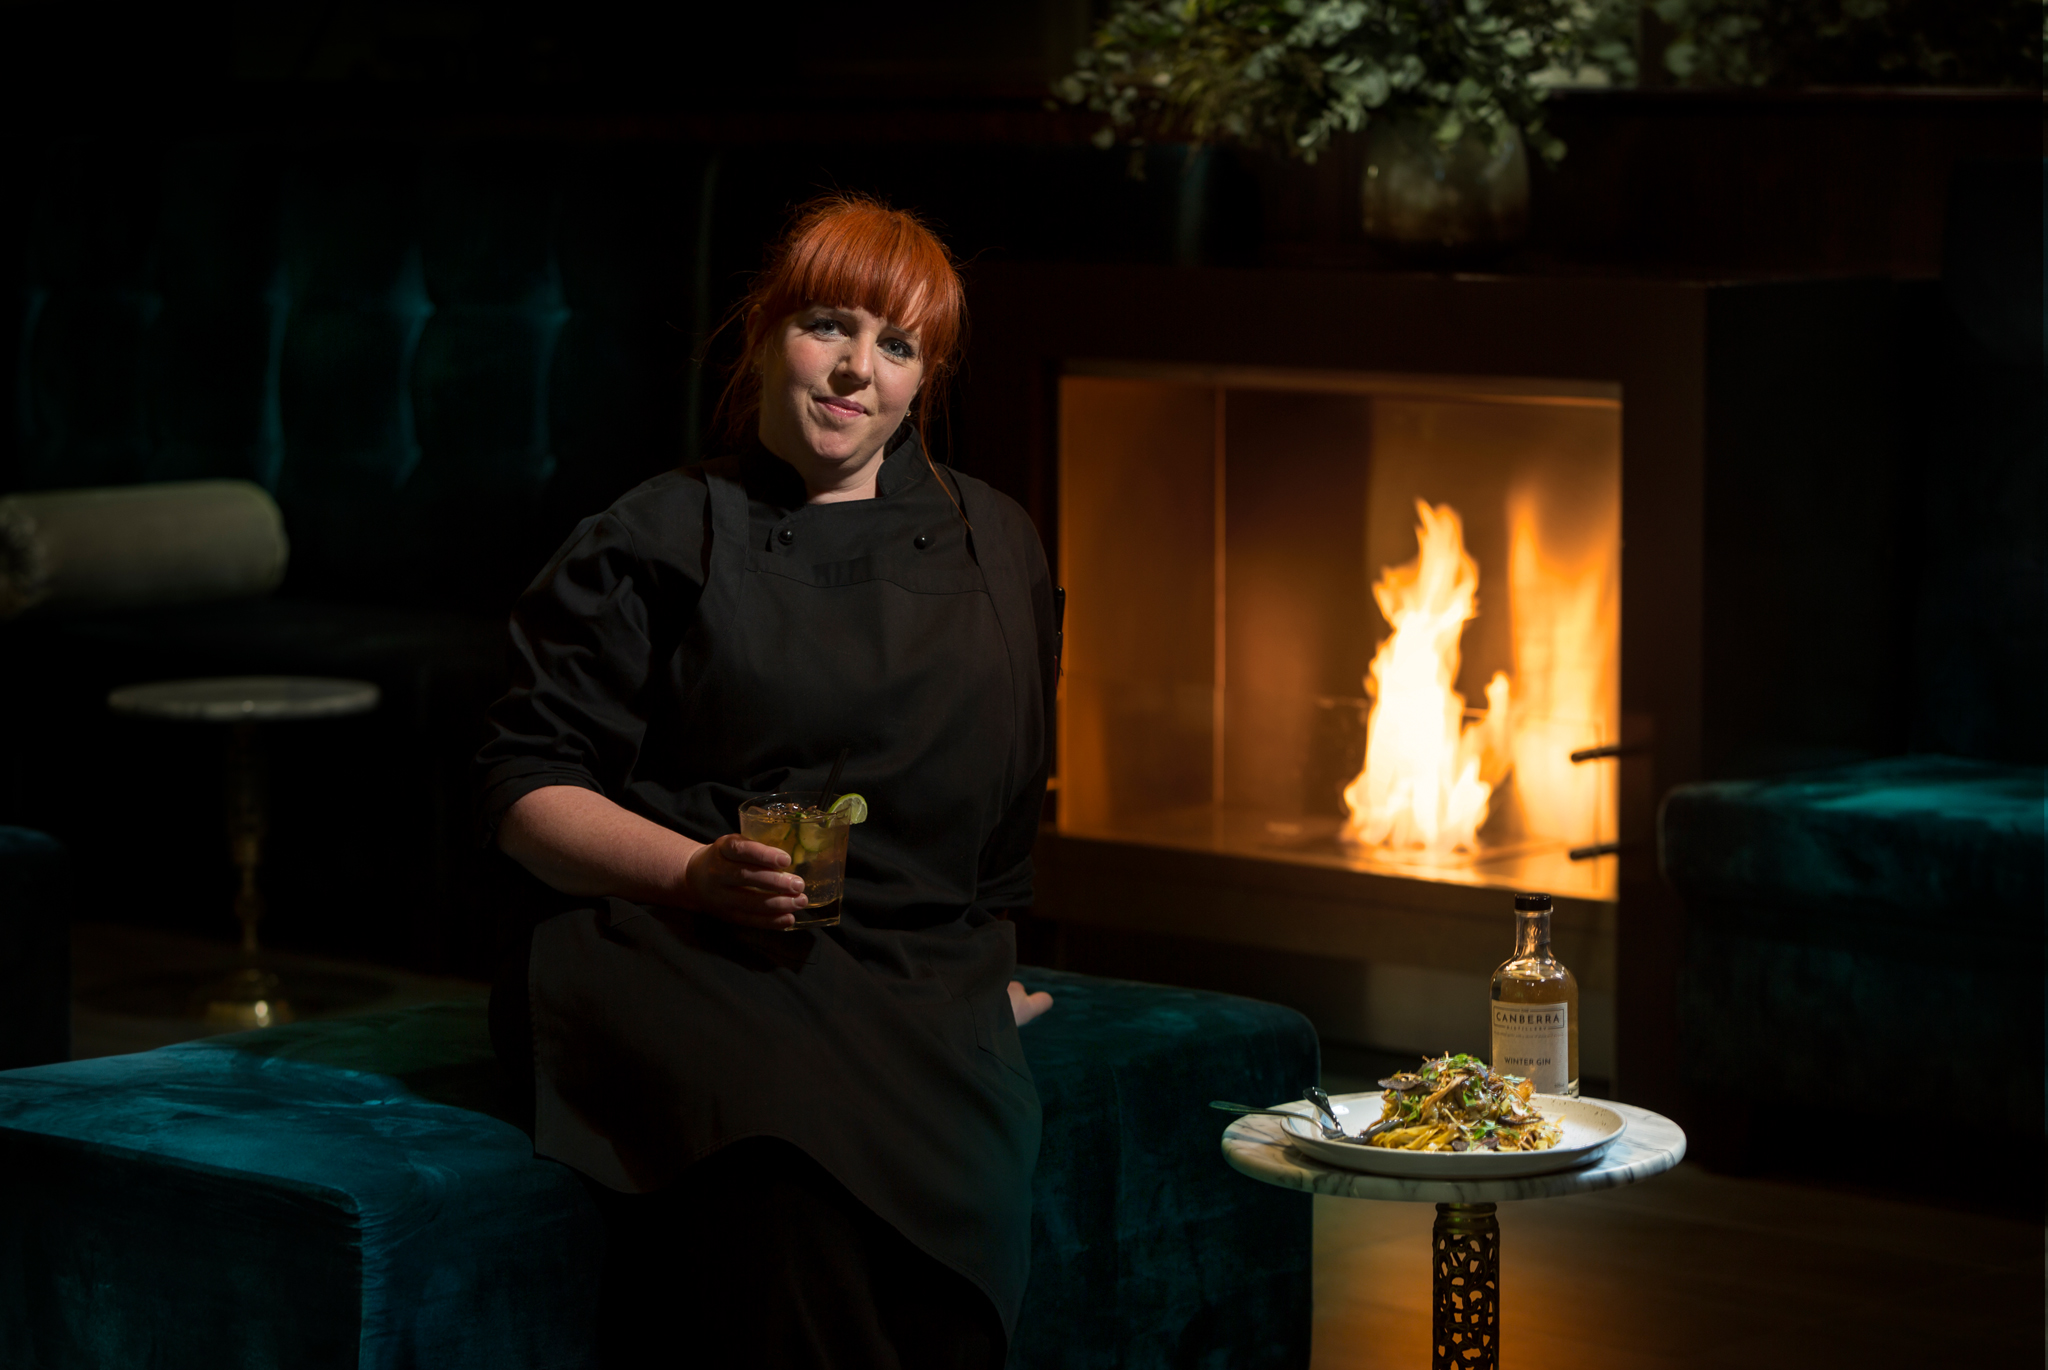 Top Modern Australian Cuisine Chef at First Edition Canberra